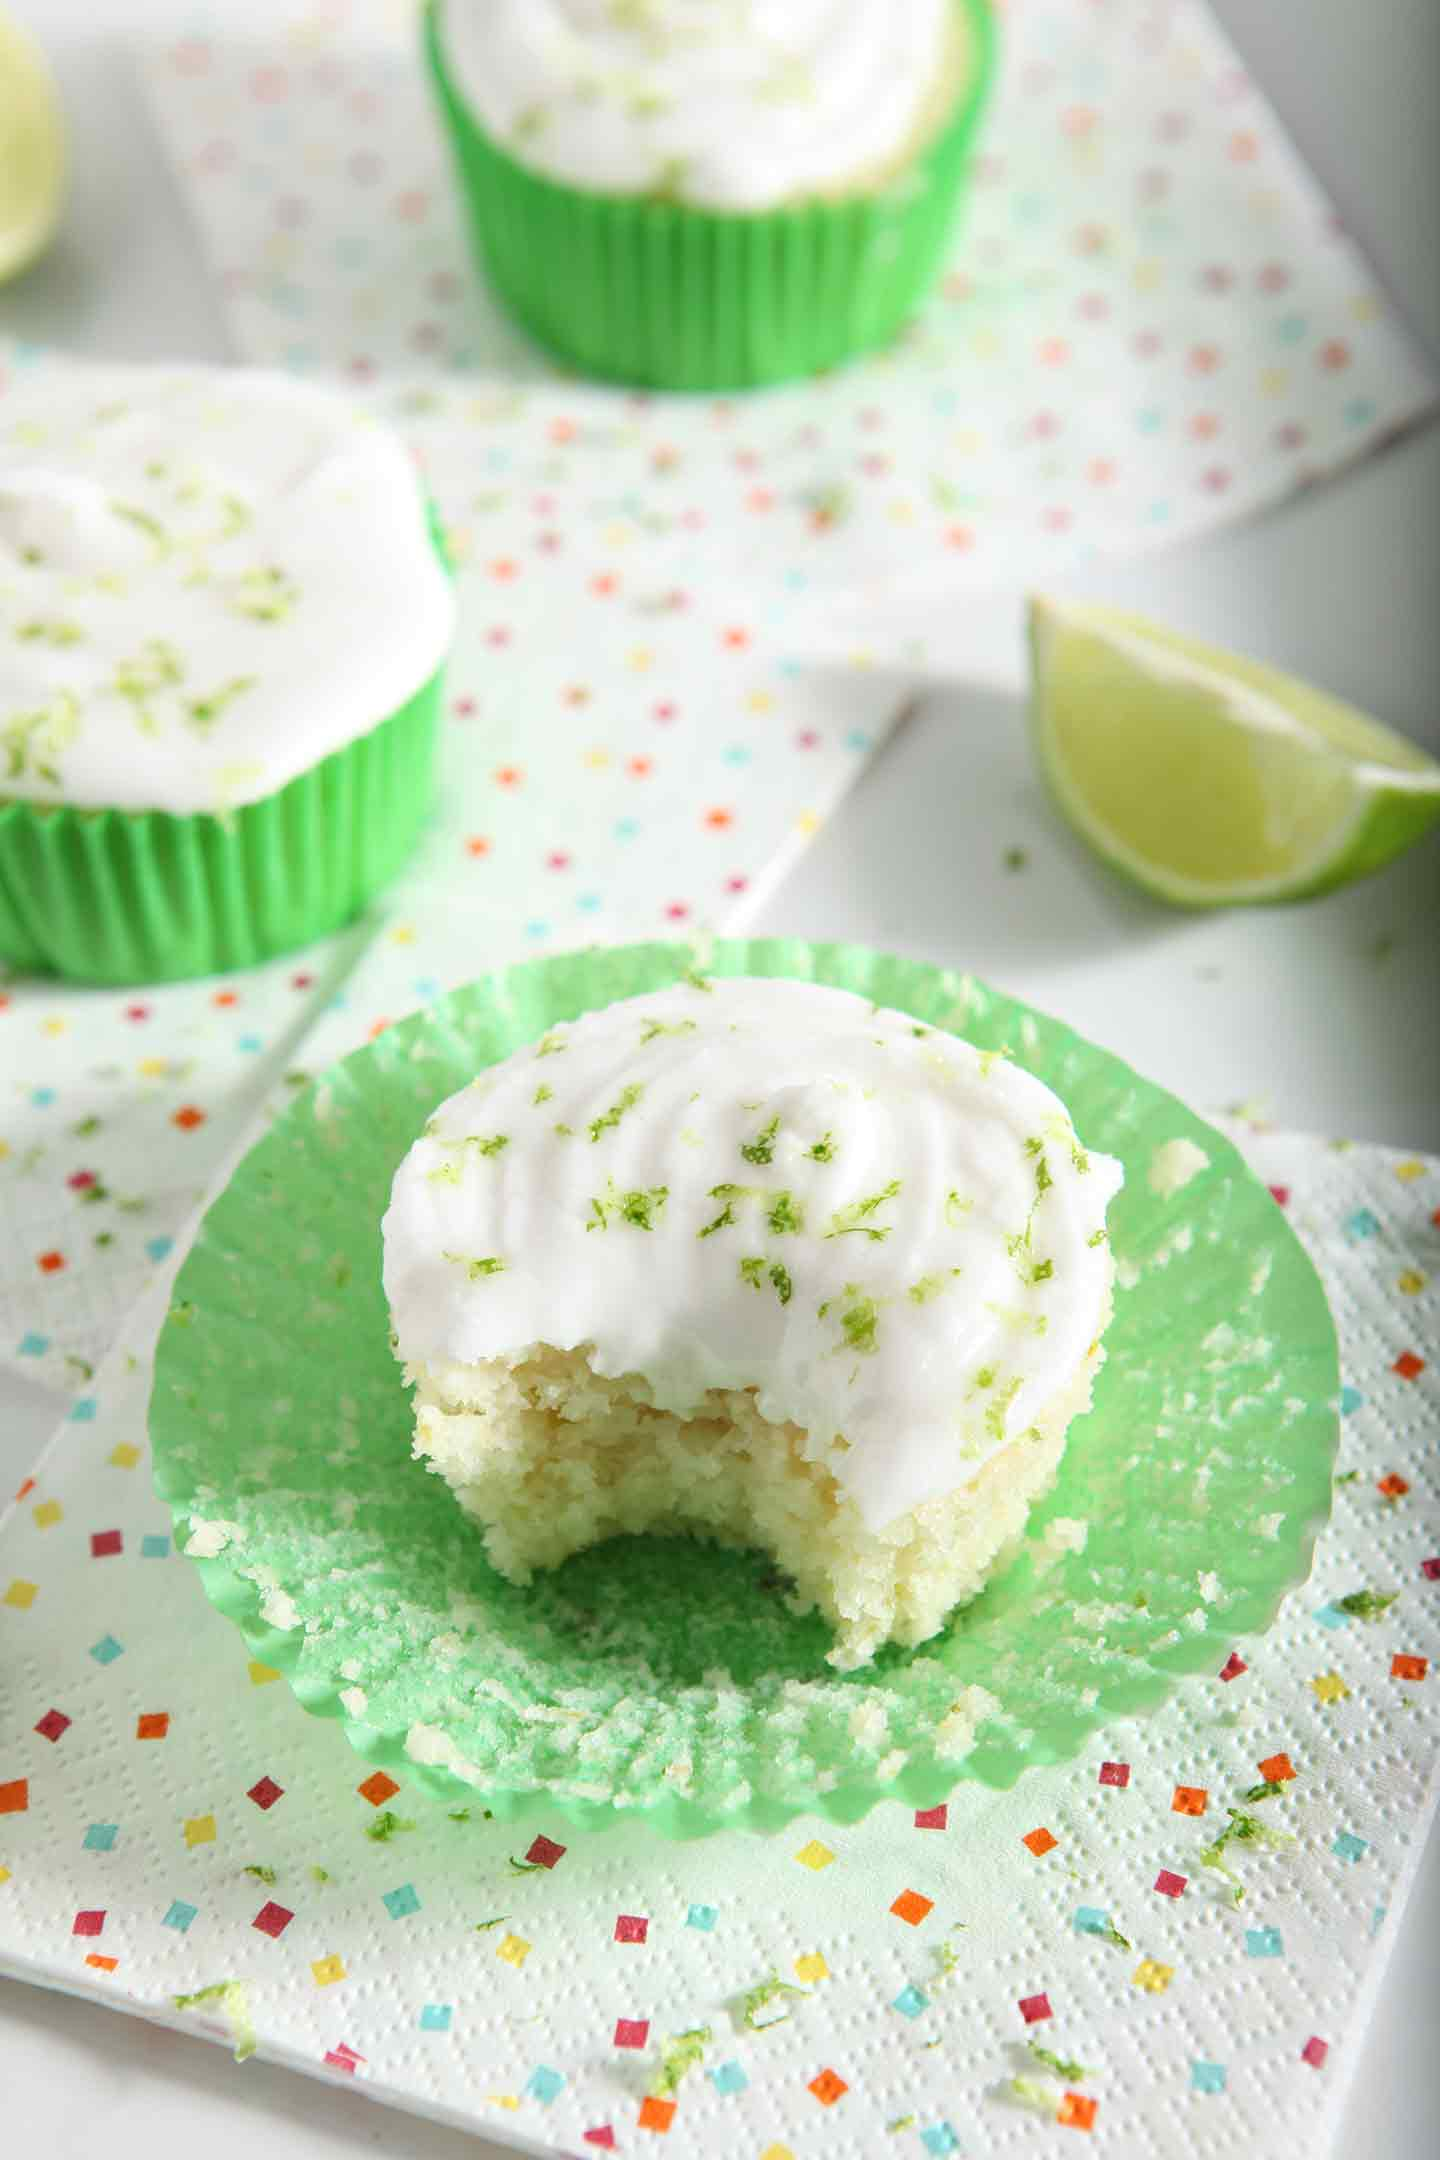 A bite is taken out of a dairy free cupcake, topped with boozy margarita frosting